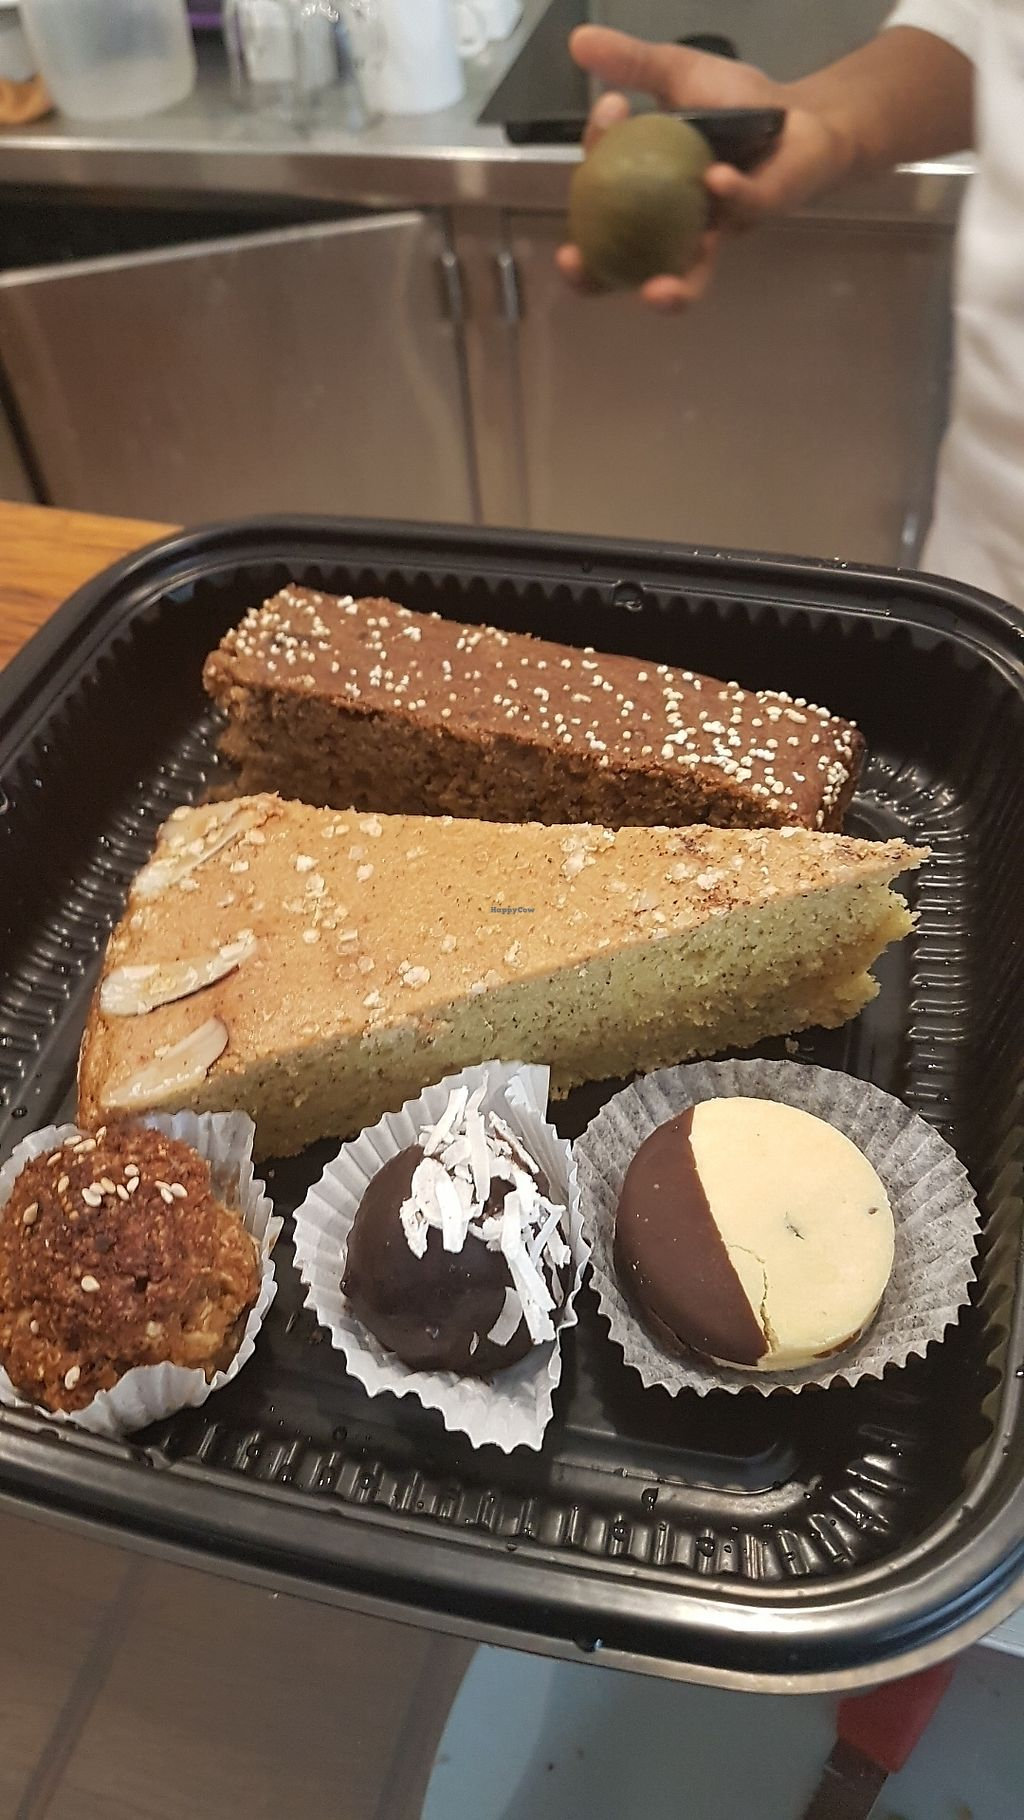 """Photo of Abdiel Vegan  by <a href=""""/members/profile/unabashed"""">unabashed</a> <br/>Breads and desserts to take home (they used my own container) <br/> August 29, 2017  - <a href='/contact/abuse/image/91668/298736'>Report</a>"""